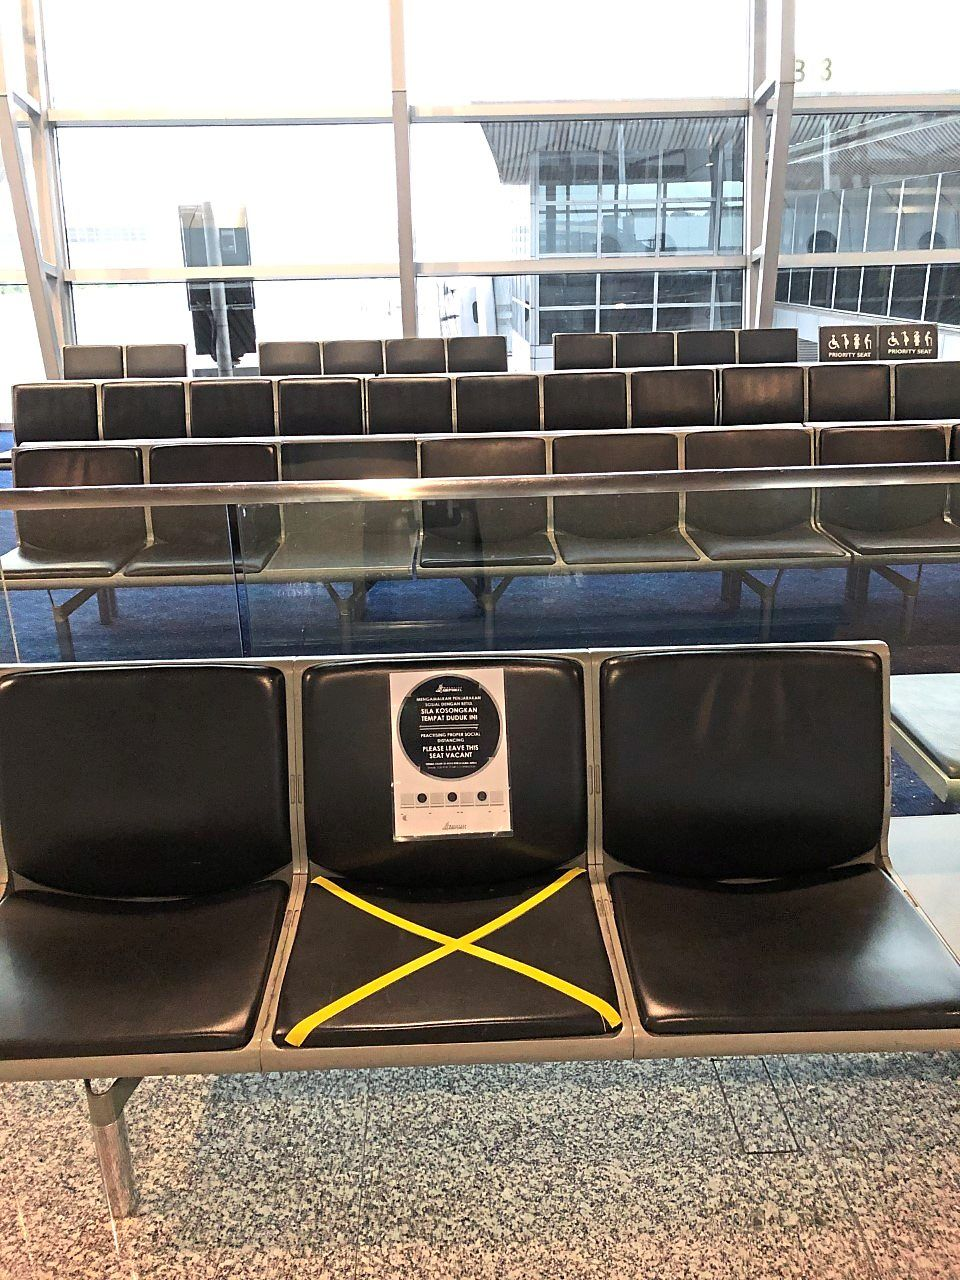 An example of confusing messaging: While there is a sign reminding passengers to keep their distance on the seat outside one of the departure gates at KLIA, there are none on the seats inside the gate itself. — Dr MILTON LUM